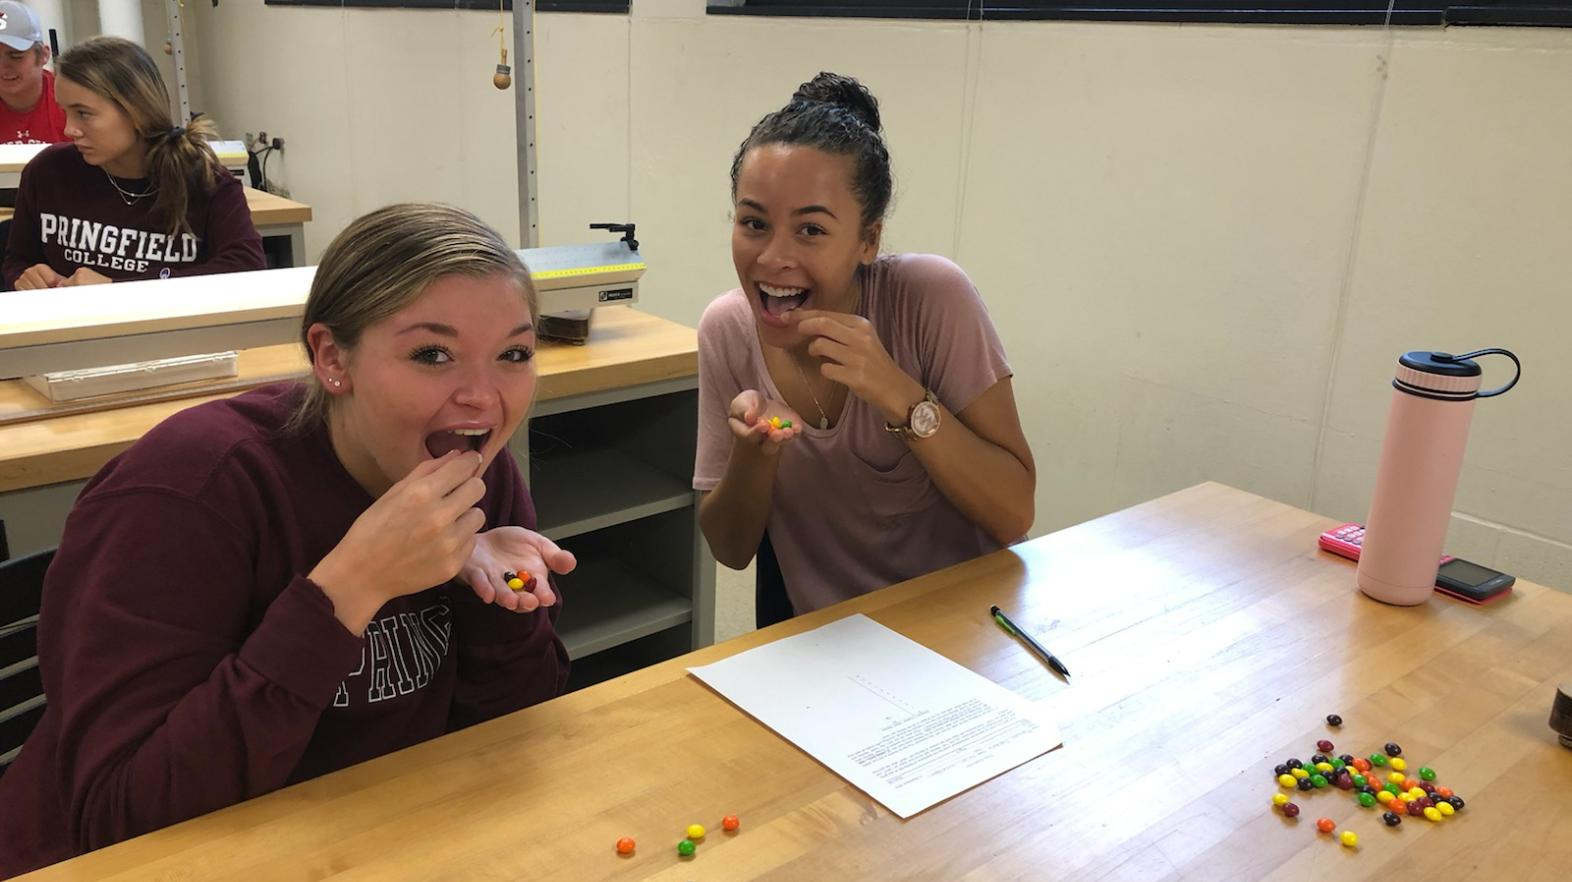 Two female students pretend to eat skittles during a math assignment